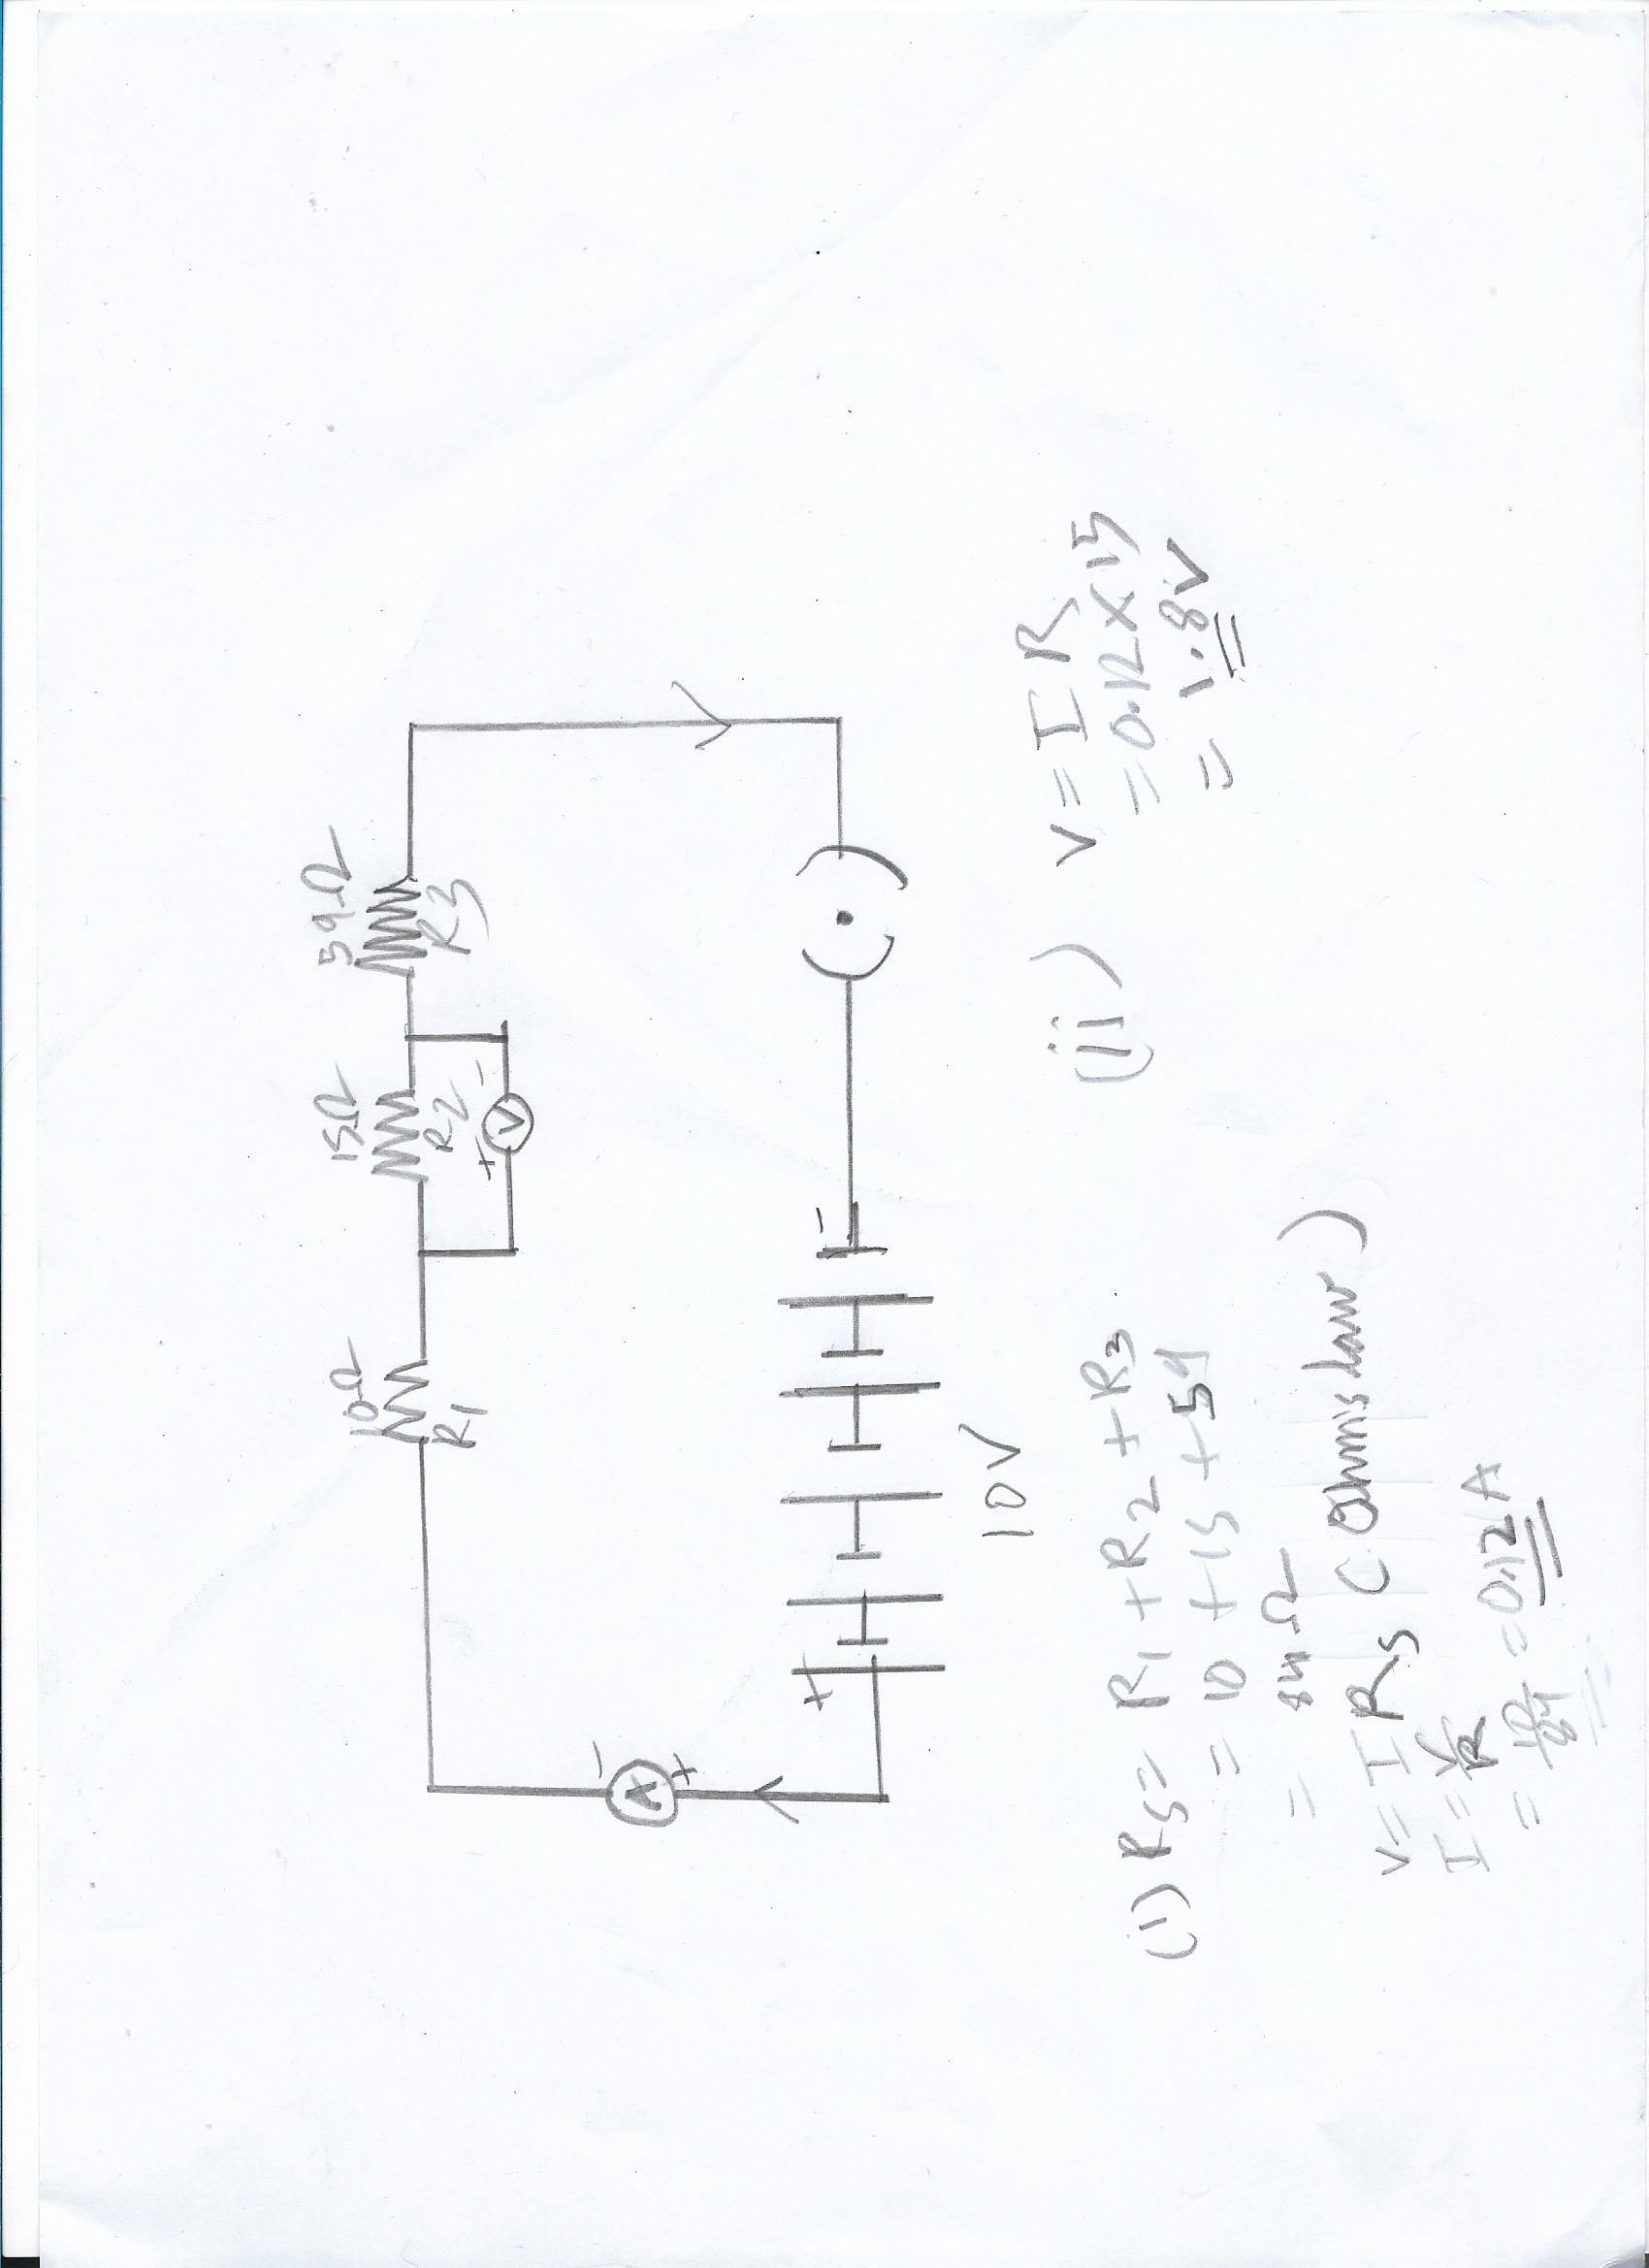 15 Draw a circuit diagram for a circuit consisting of a